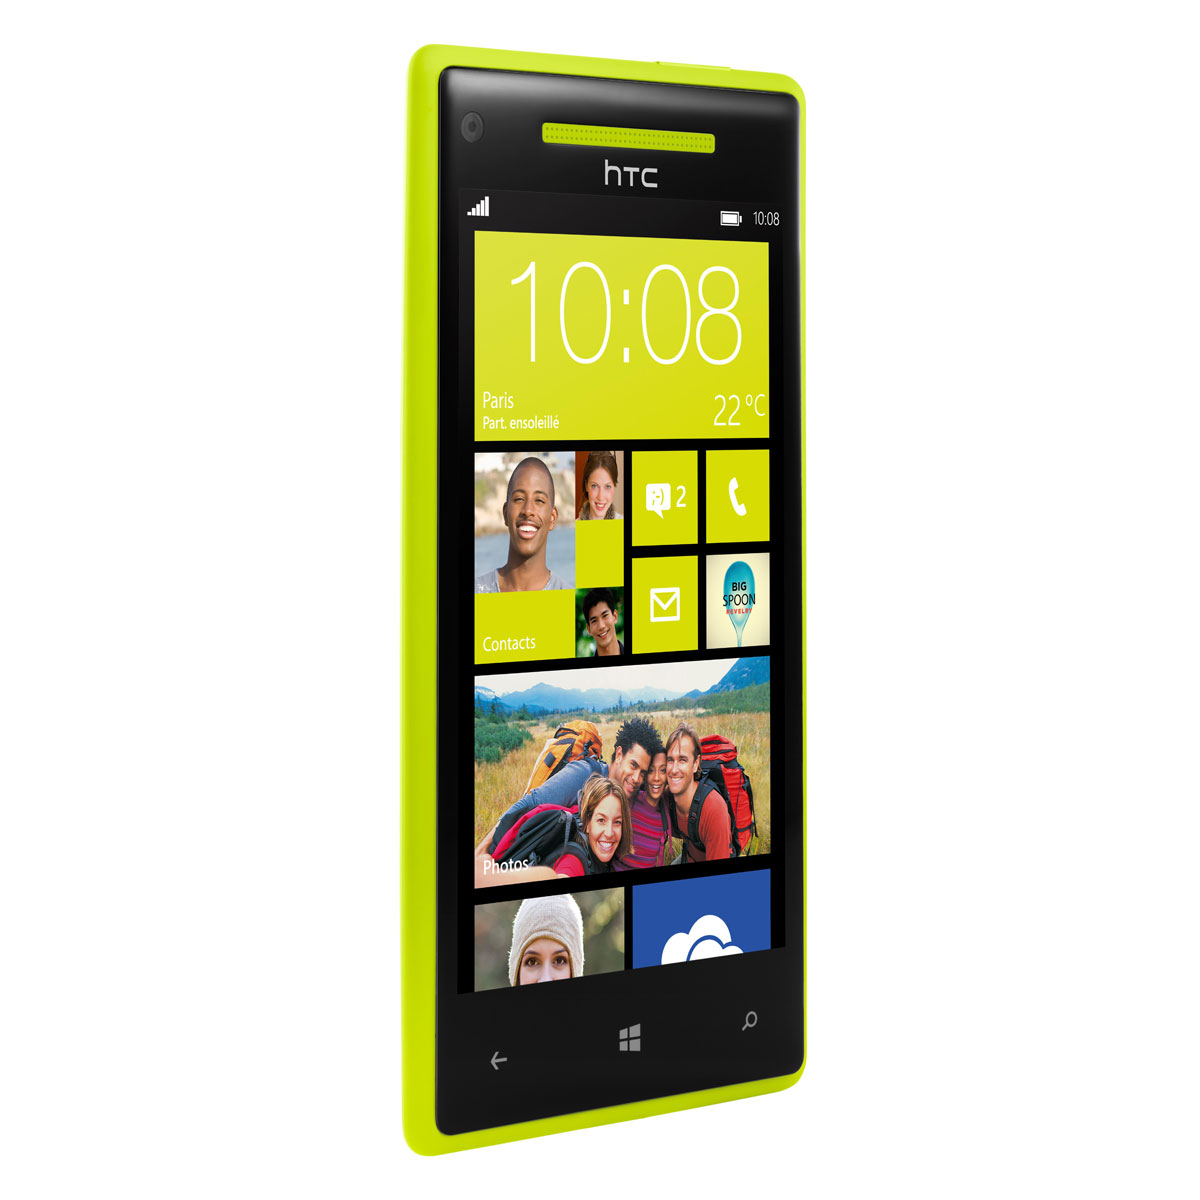 htc windows phone 8x jaune mobile smartphone htc sur ldlc. Black Bedroom Furniture Sets. Home Design Ideas